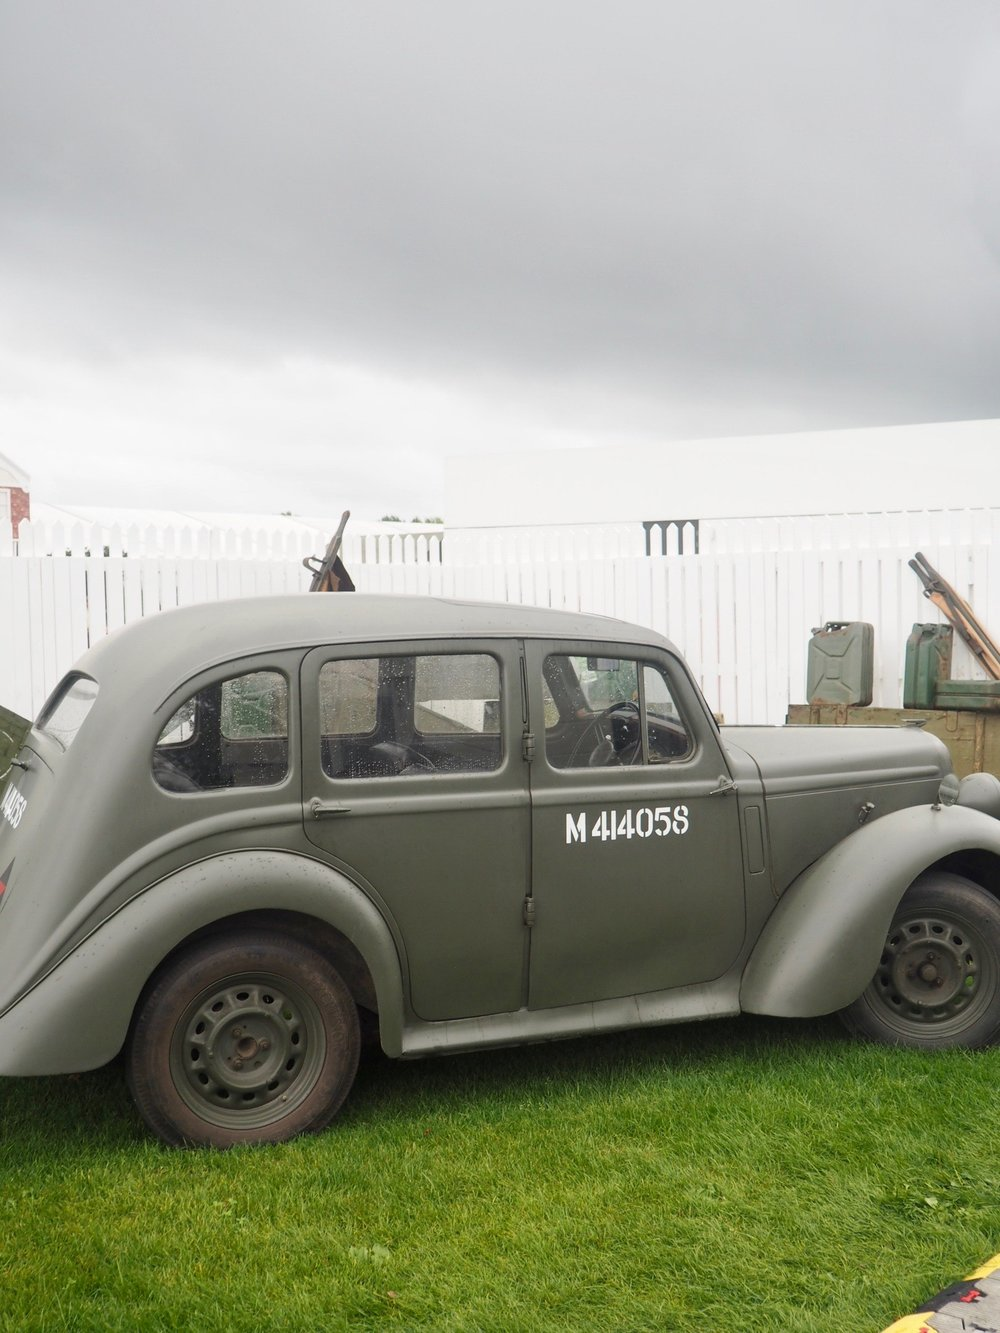 Lovely vintage car at Goodwood Revival. Just look at that sky!